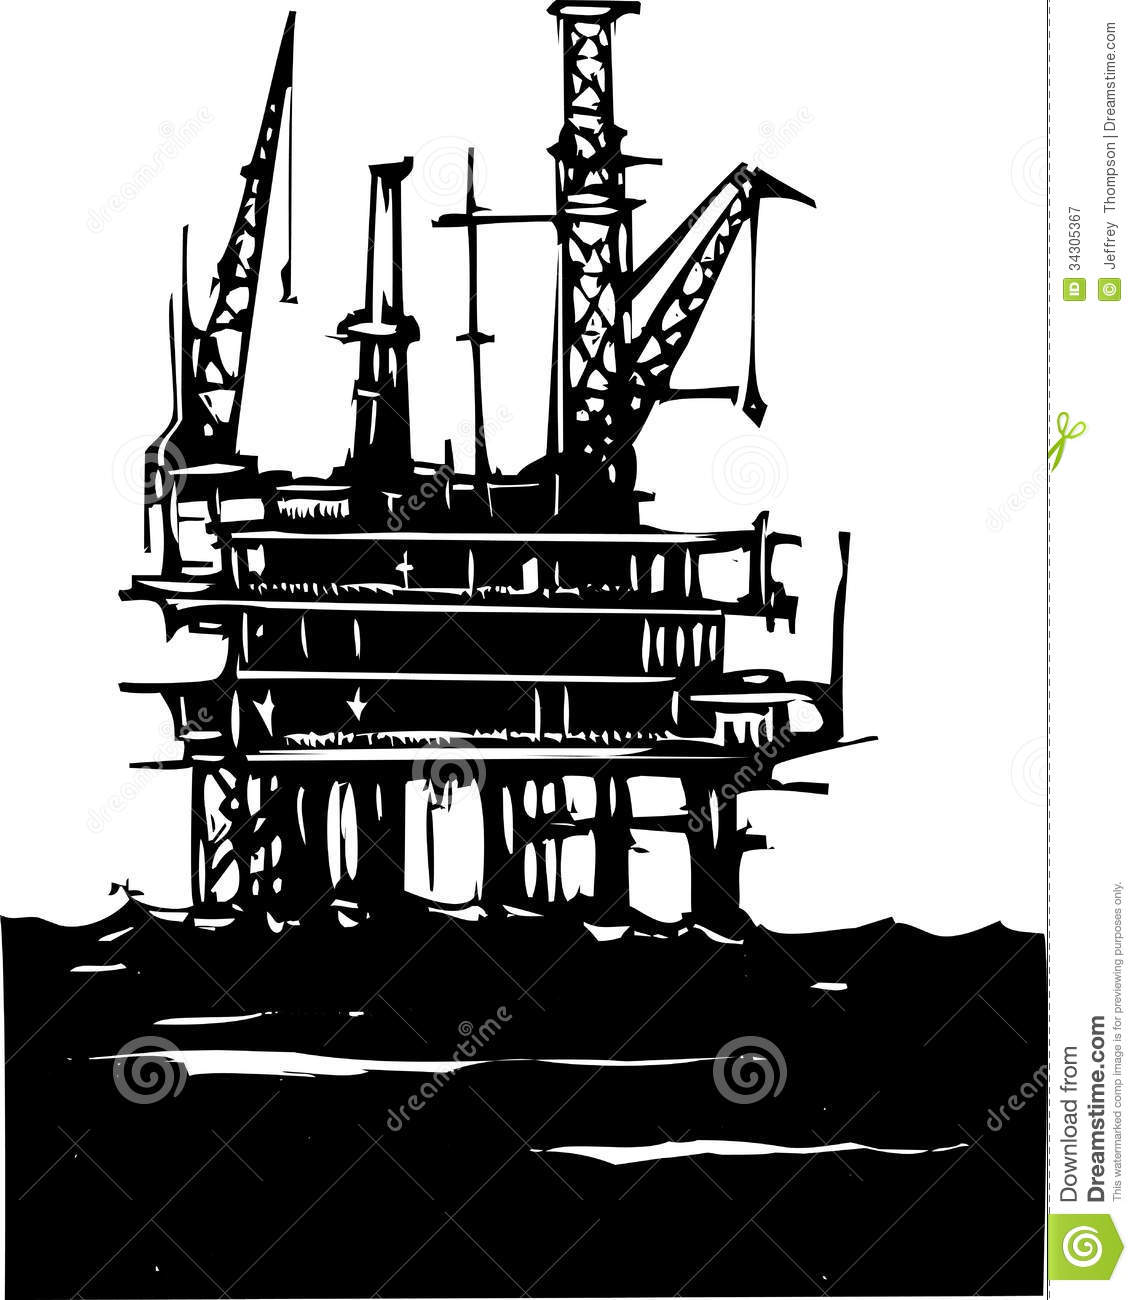 ... Style image of a Deep sea offshore oil rig drilling on the ocean